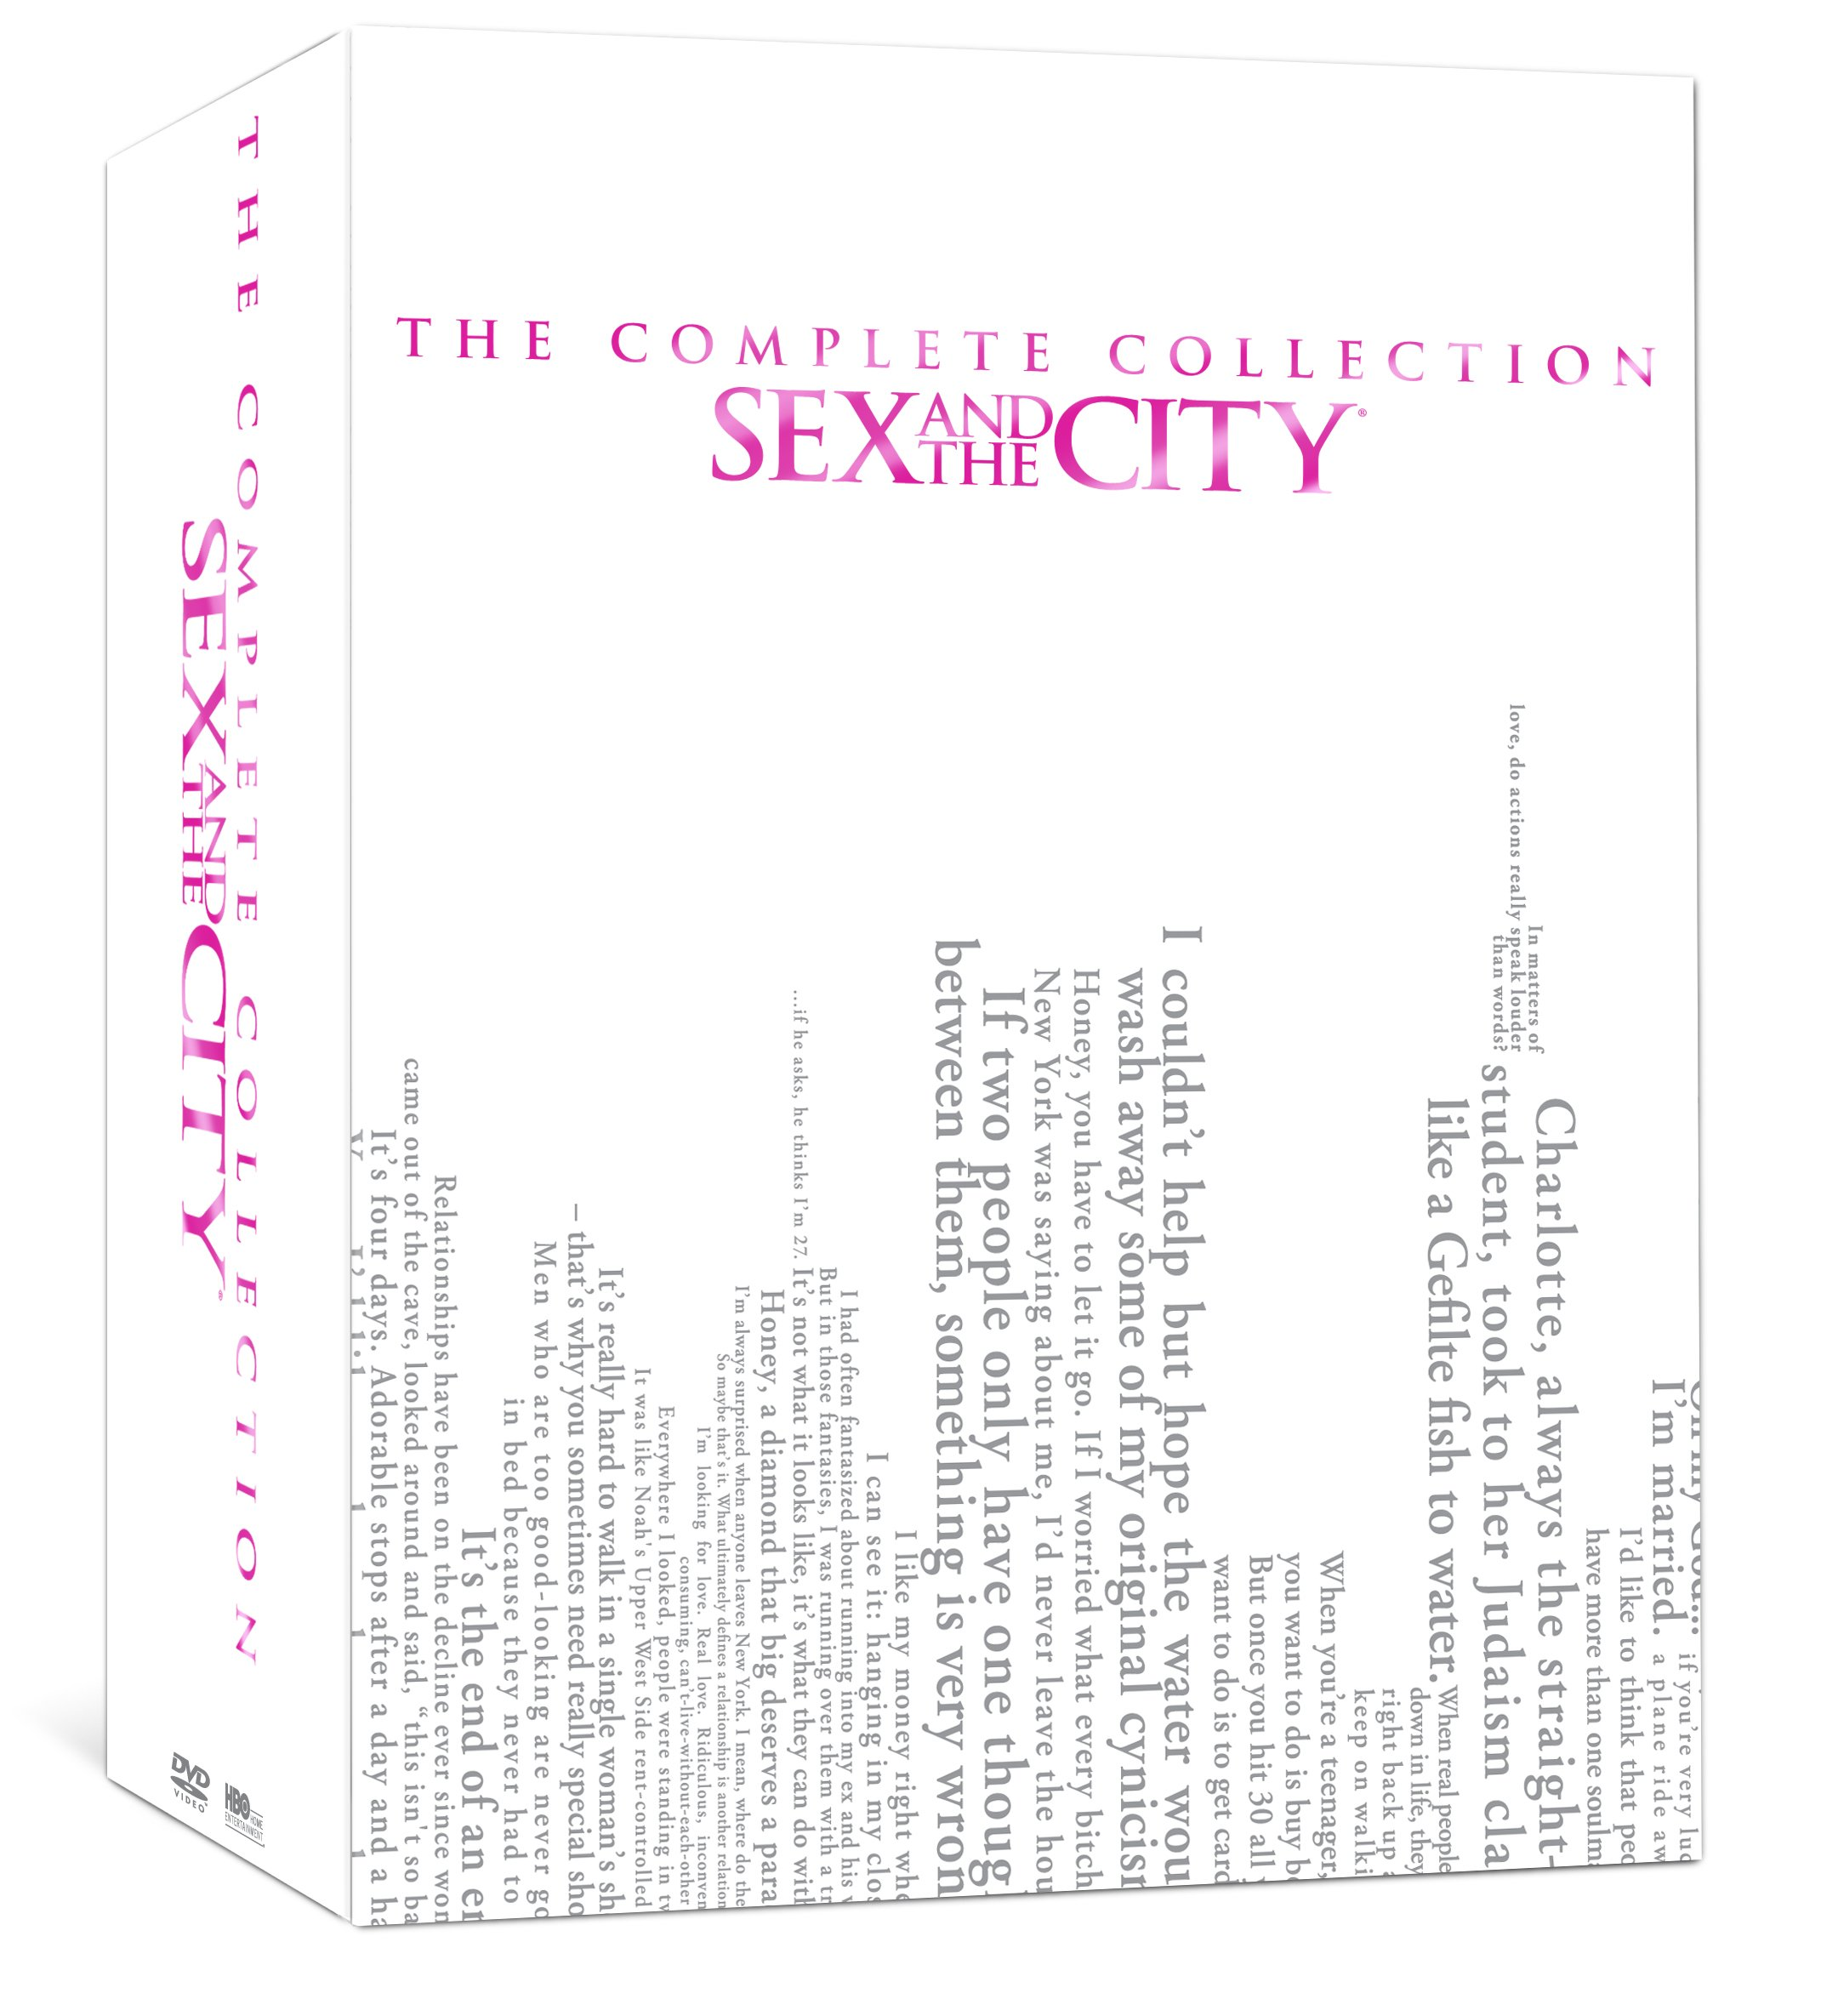 DVD : Sex and the City: The Complete Series (Oversize Item Split, Boxed Set, Slipsleeve Packaging, Repackaged, 7 Disc)